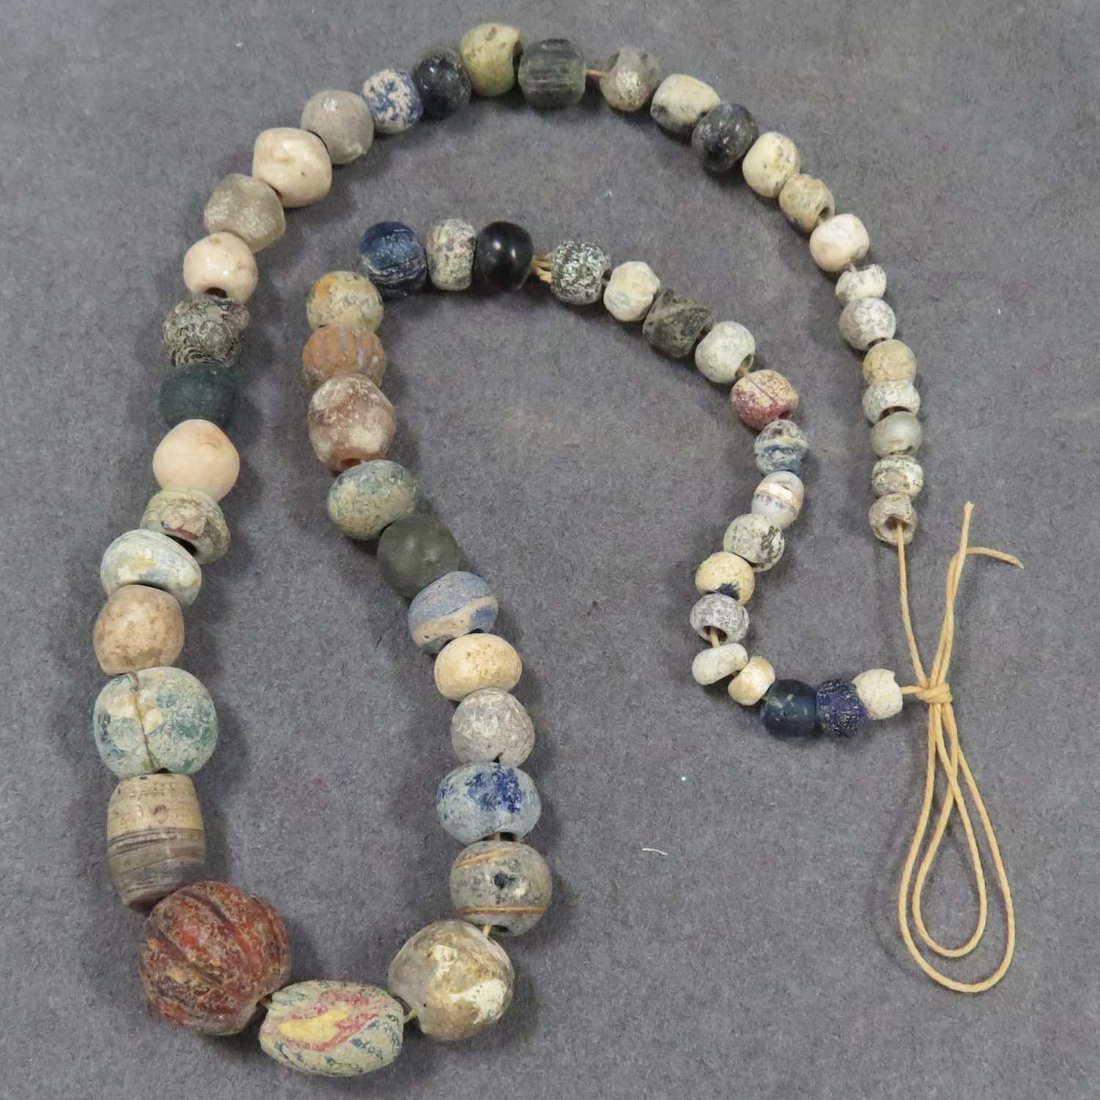 NEAR EASTERN/HOLY LAND AREA STRAND BEAD NECKLACE